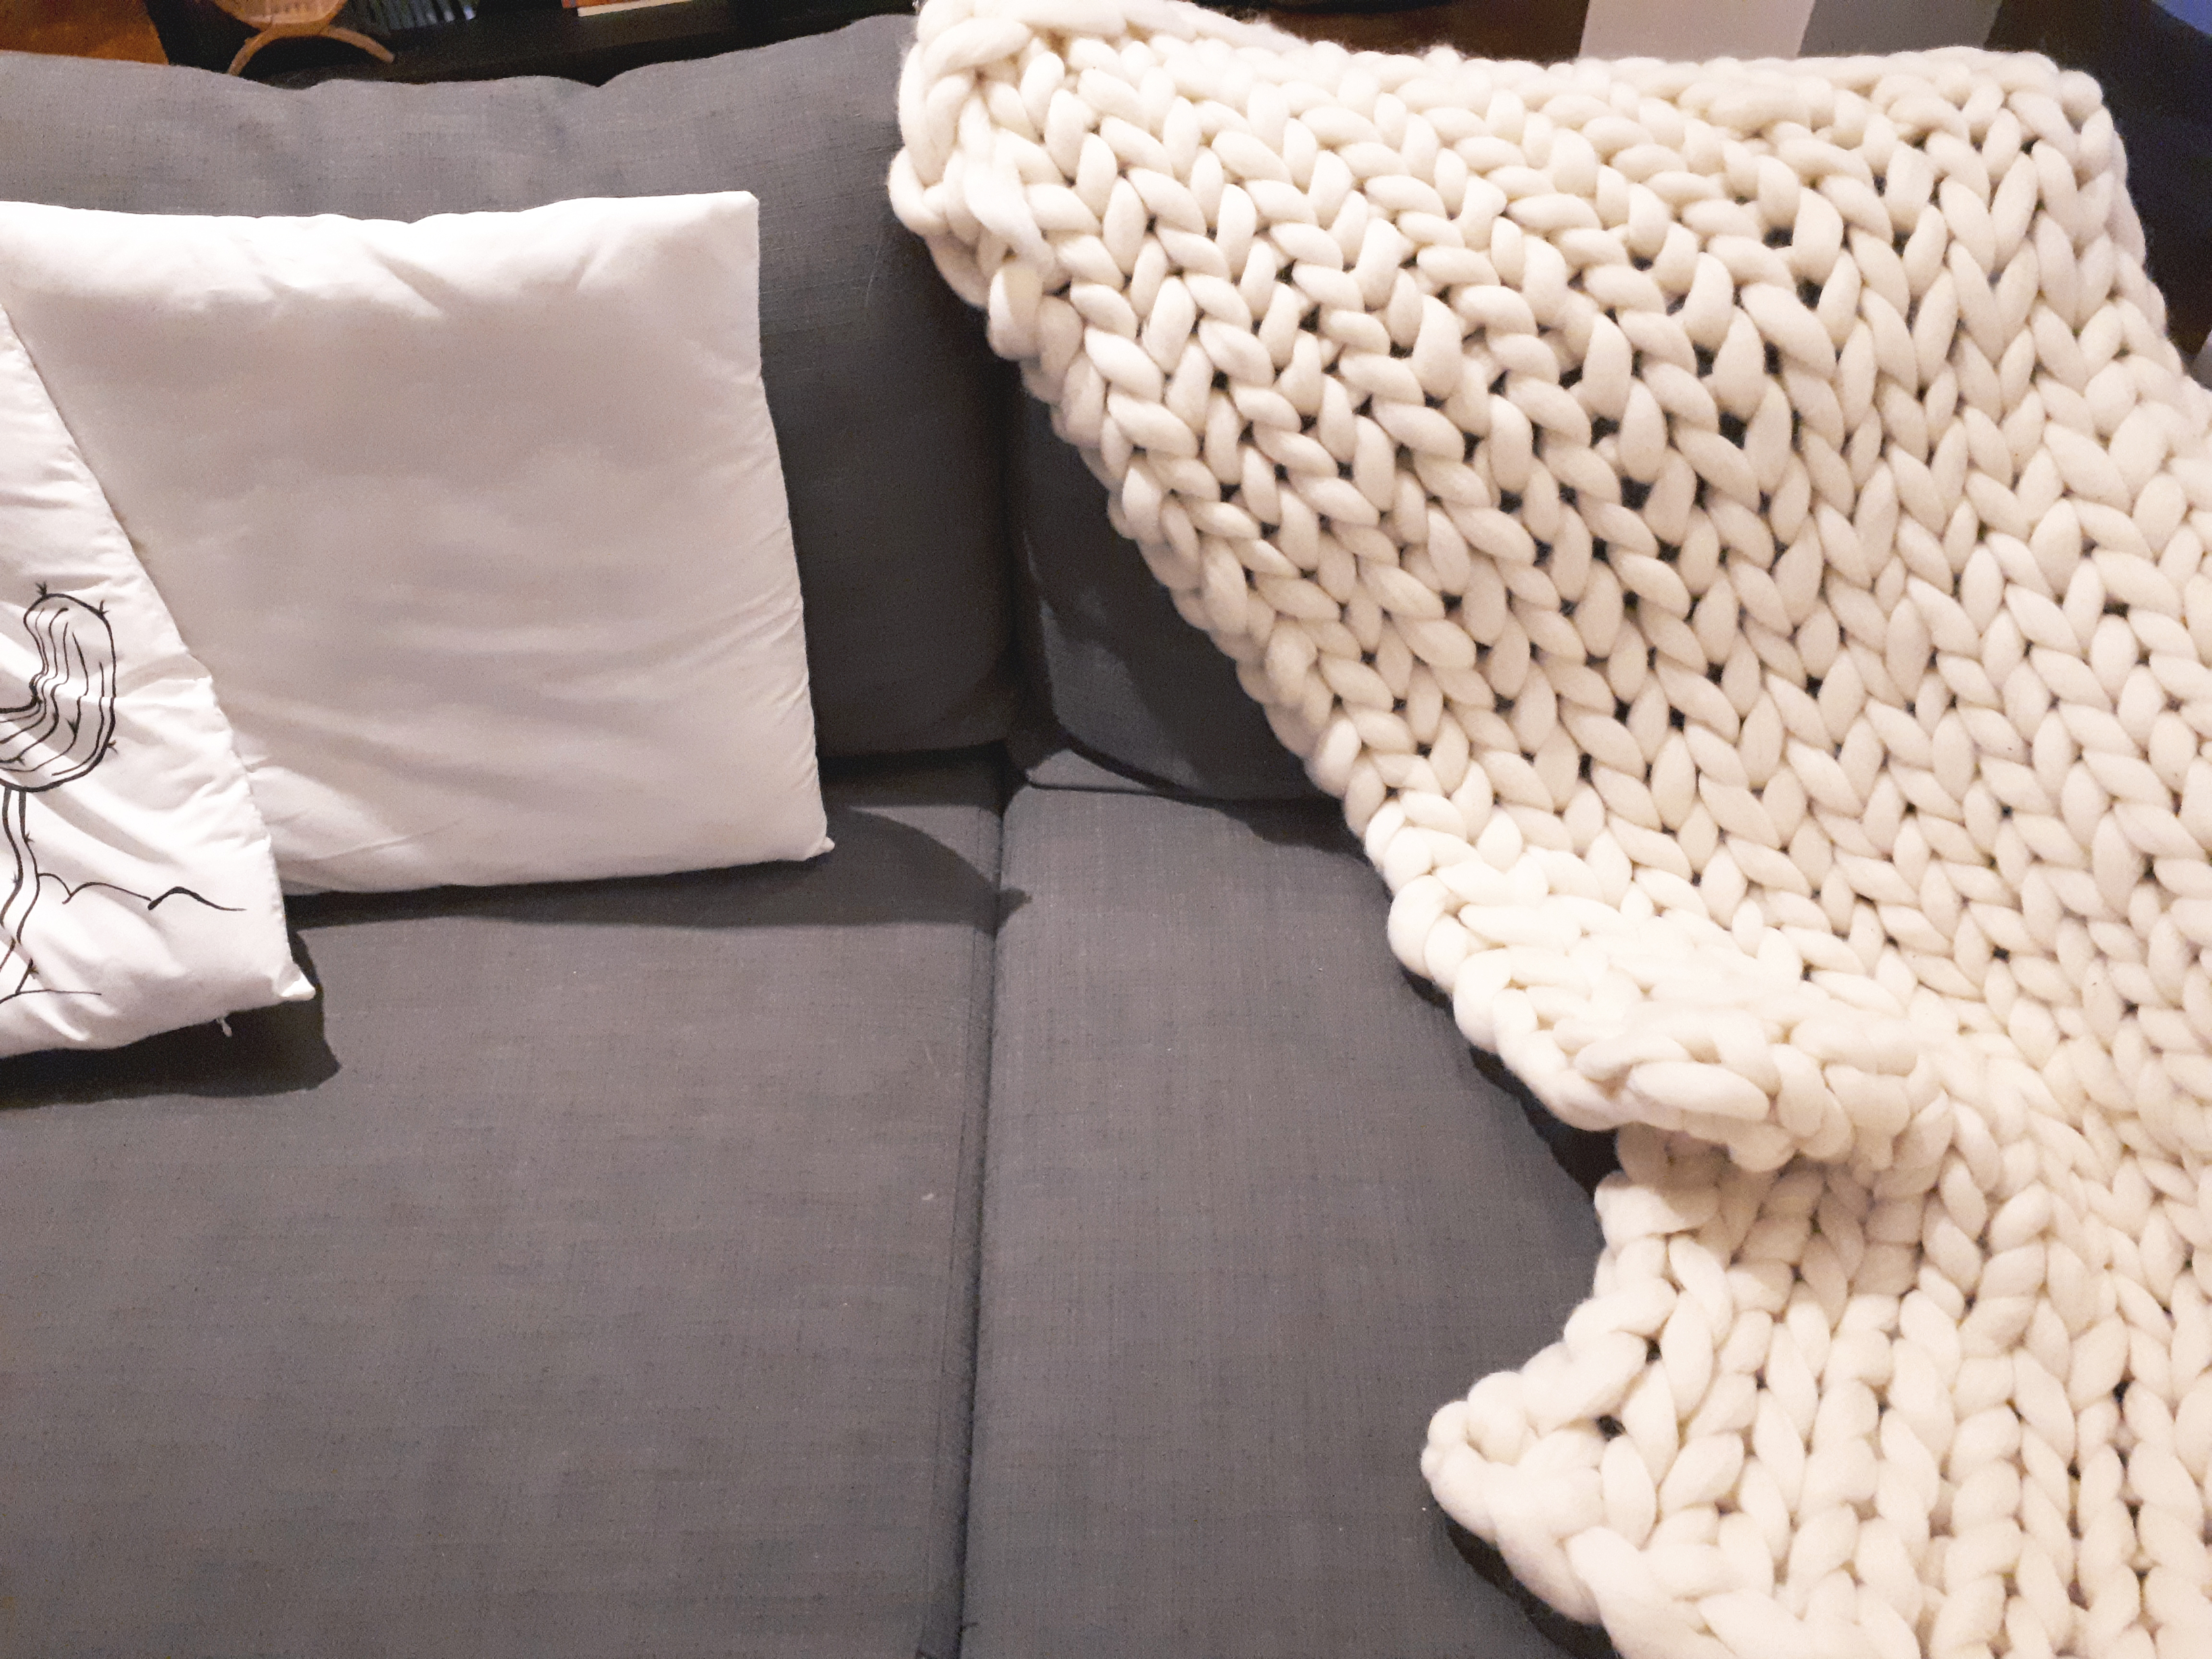 DIY-deco-hygge-couette-maxi-laine-Cactus-and-Style